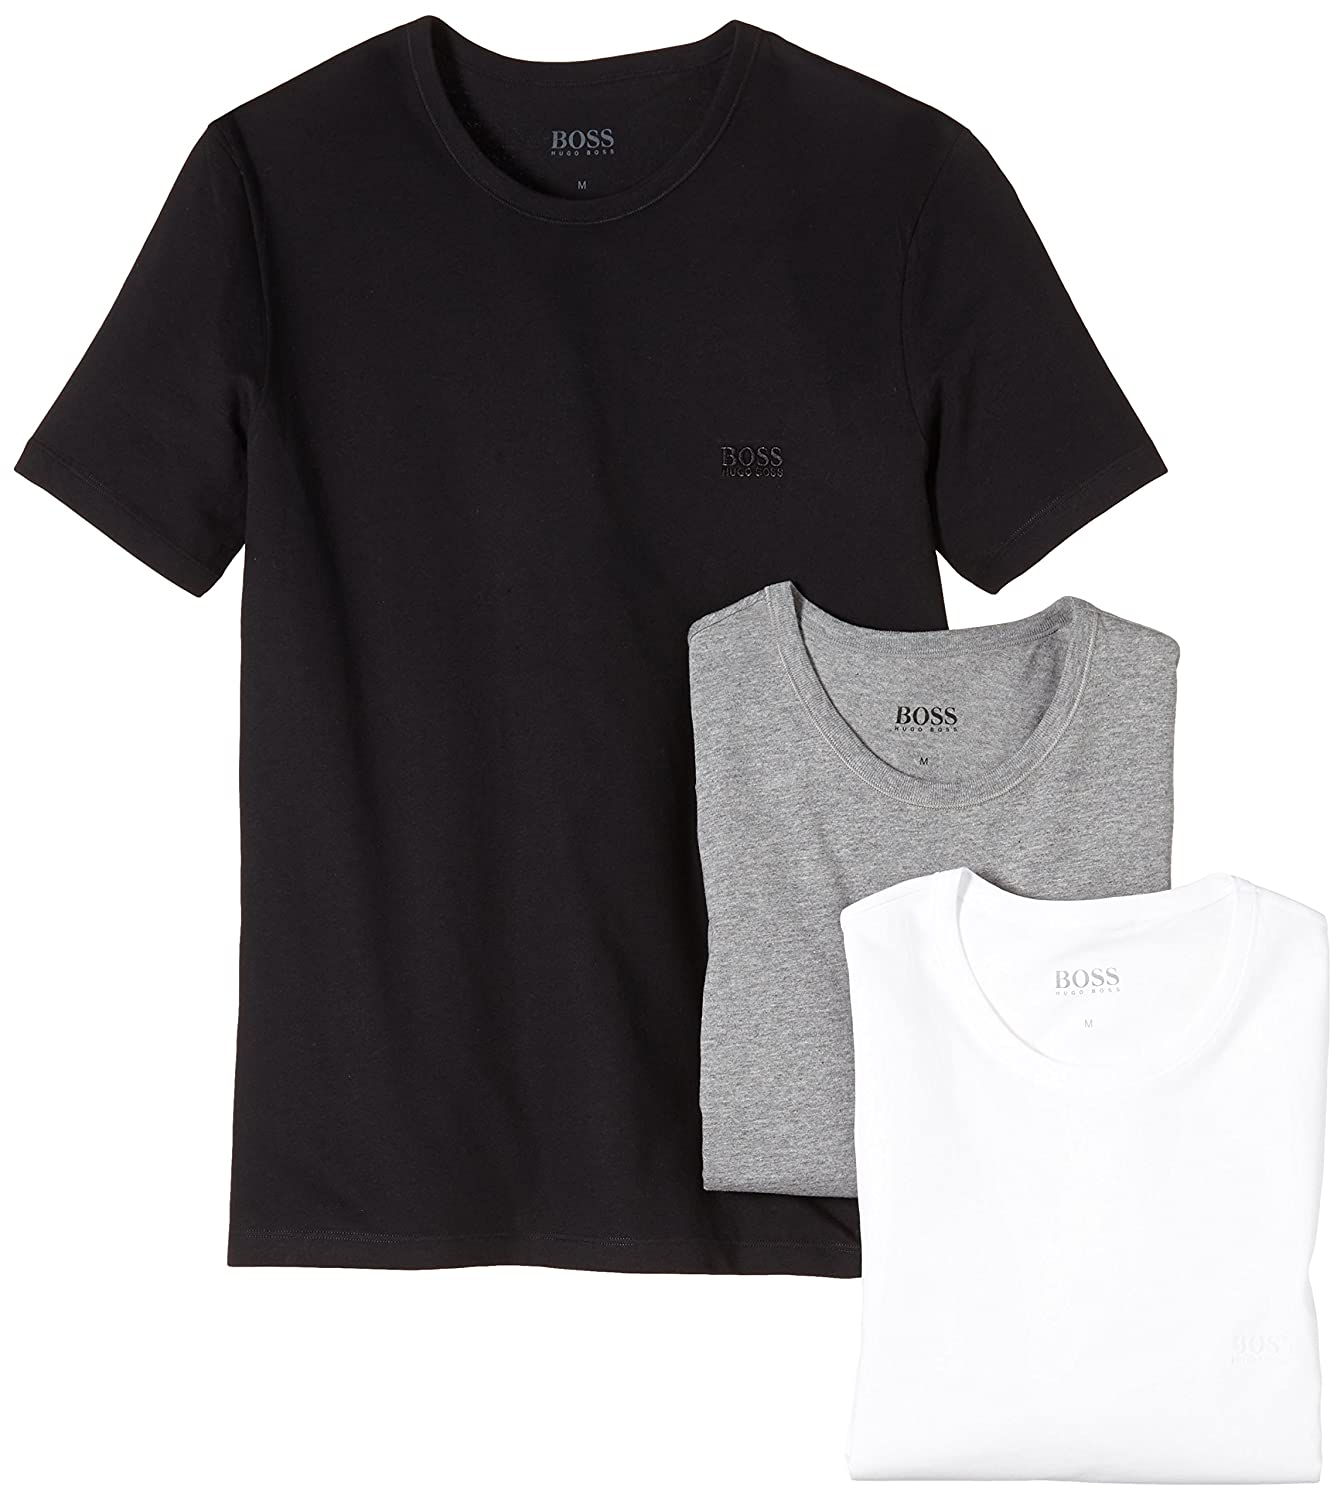 a5a12c5c BOSS Hugo Boss Men's Crew Neck T-Shirts: Amazon.co.uk: Clothing